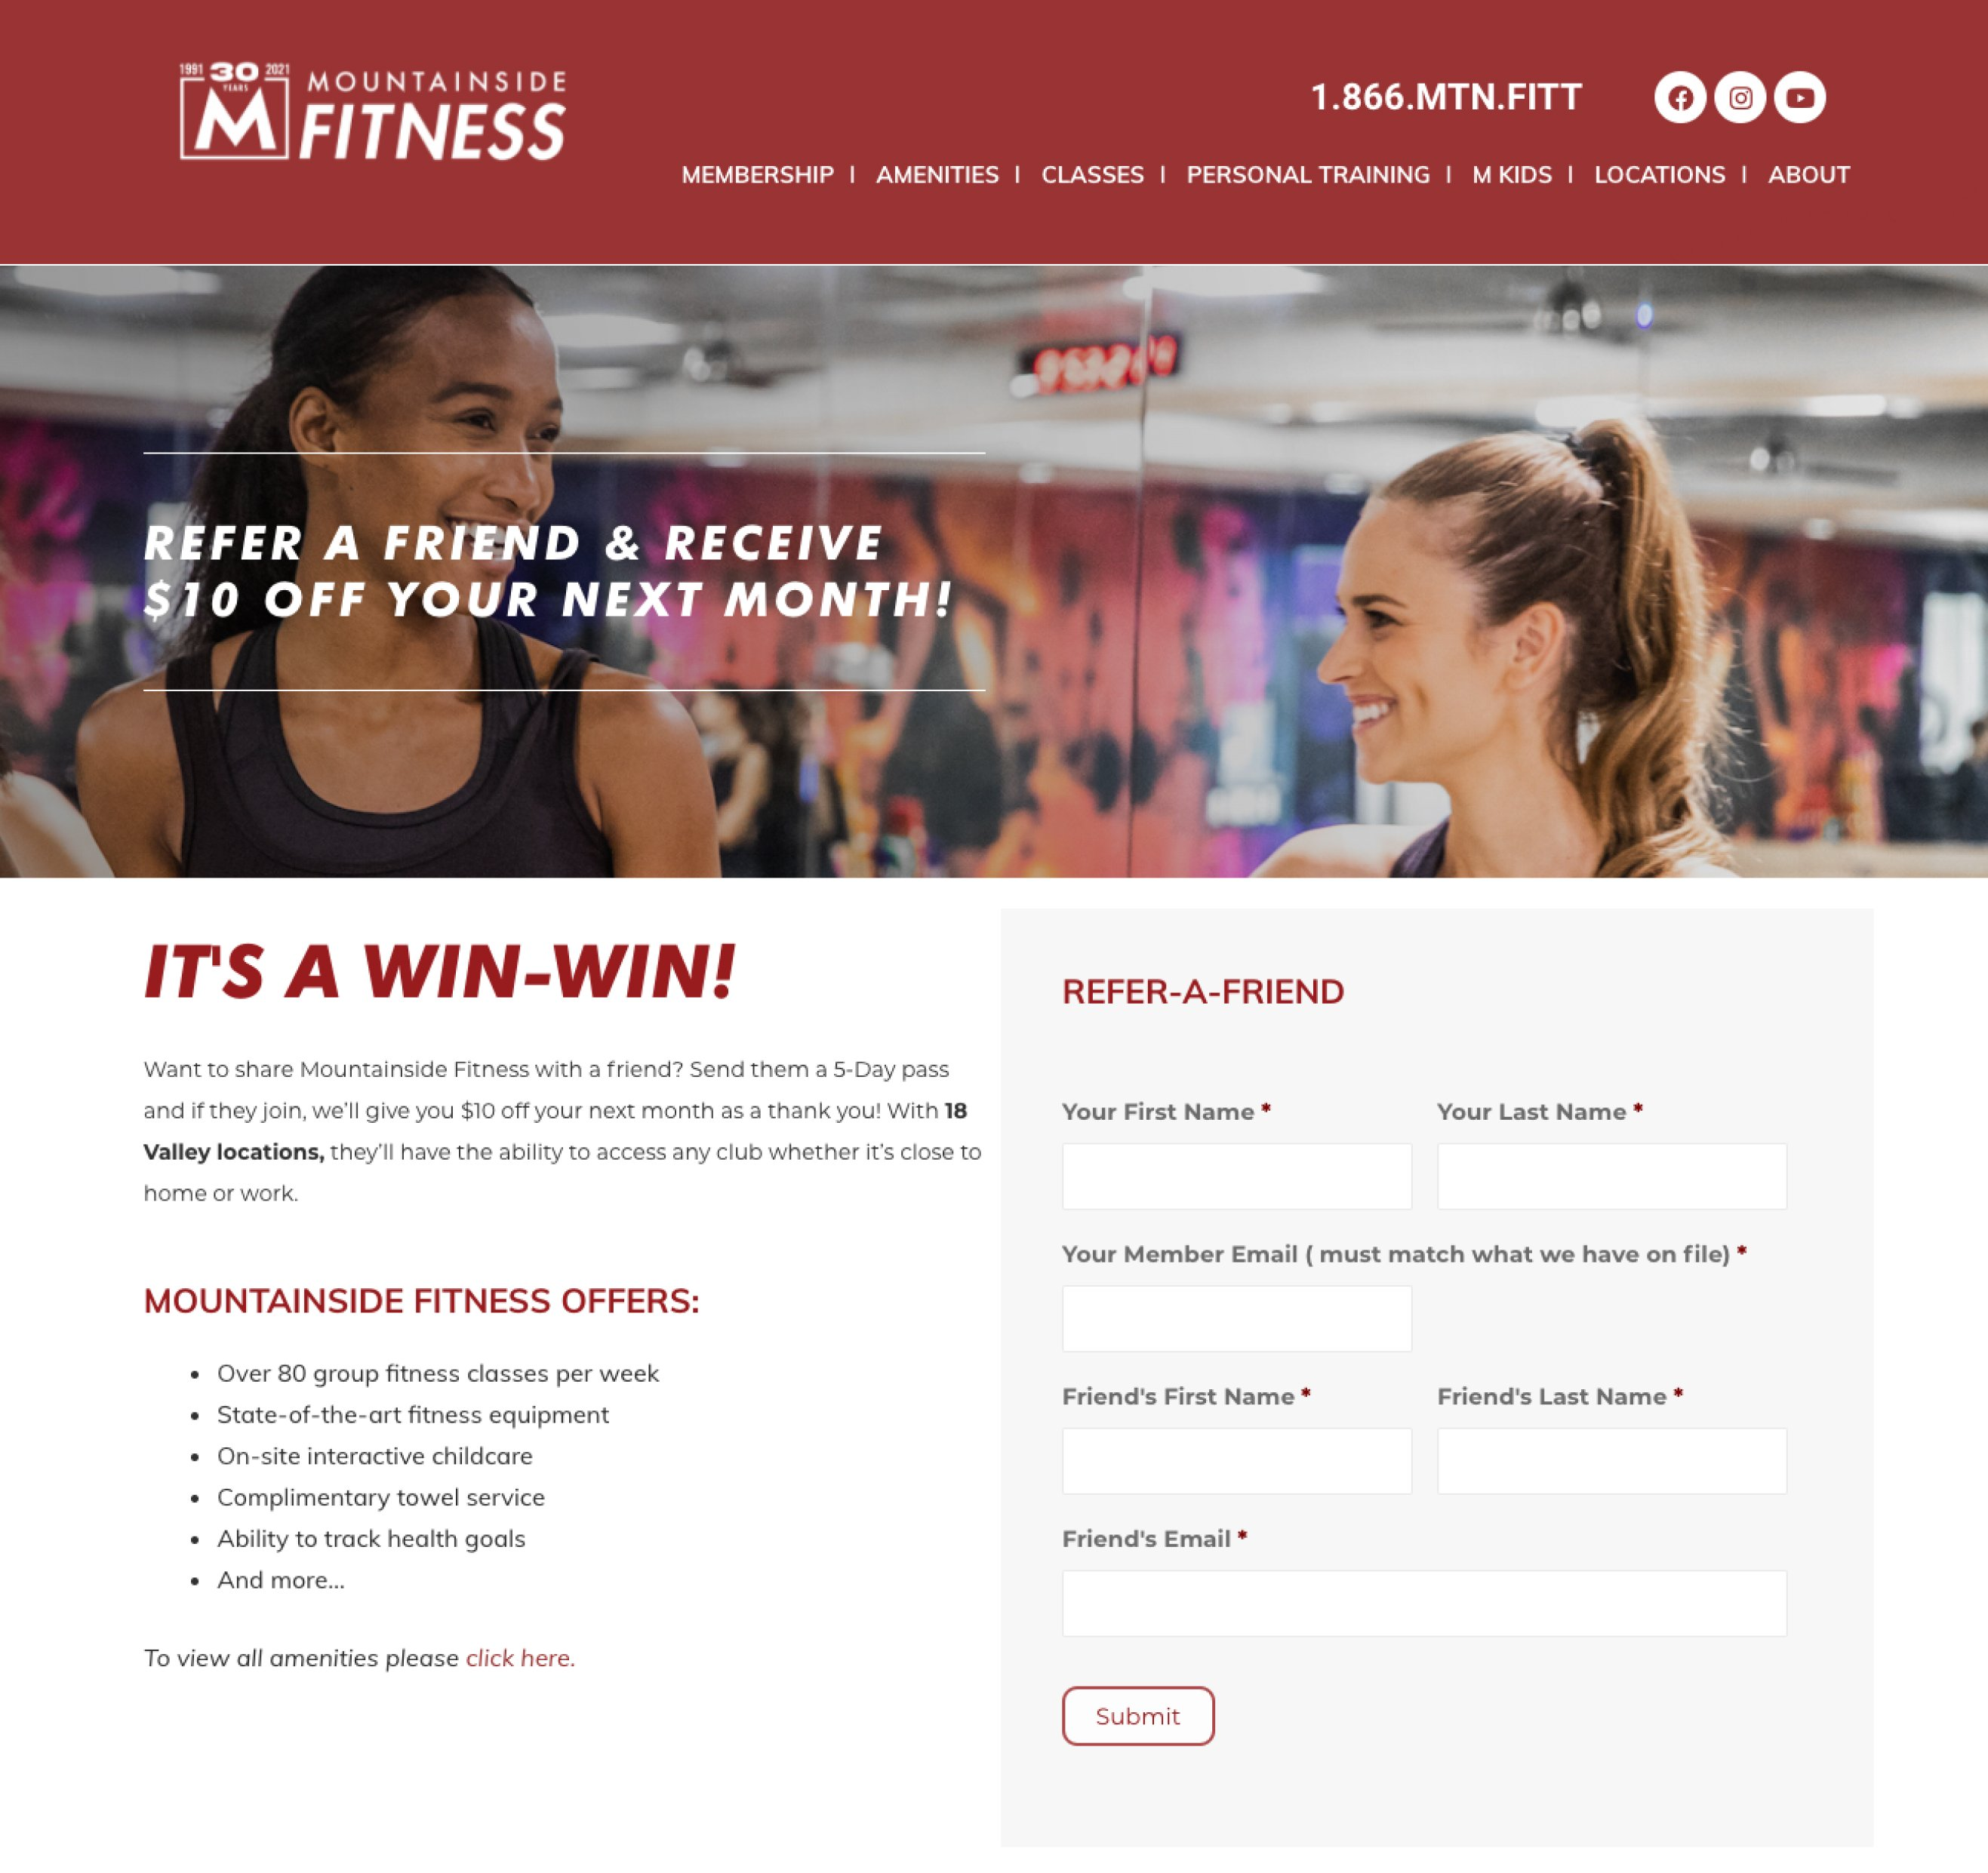 Mountainside Fitness refer a friend signup form on landing page